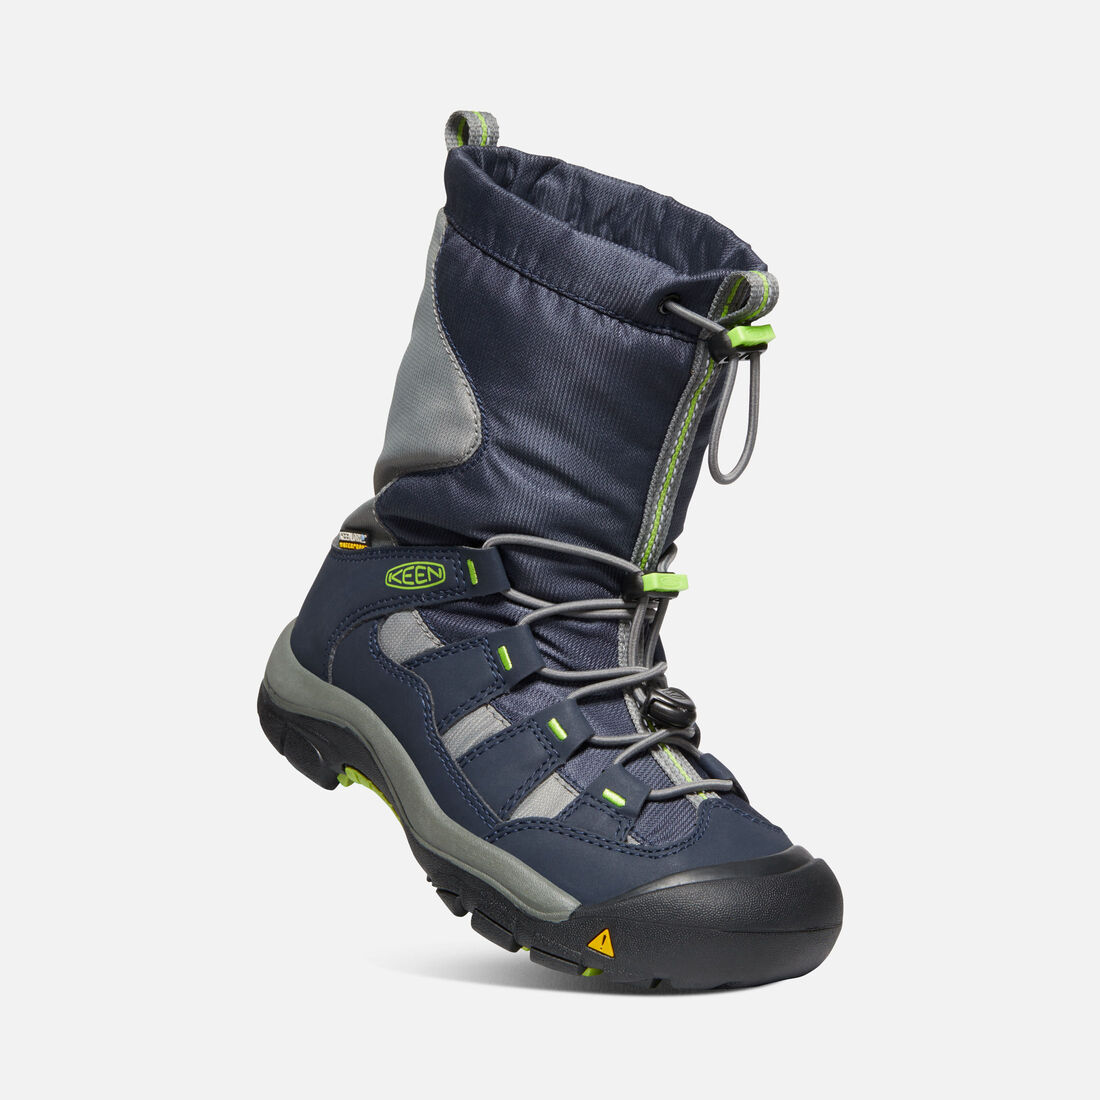 KEEN WINTERPORT blue nights/greenery vel.29